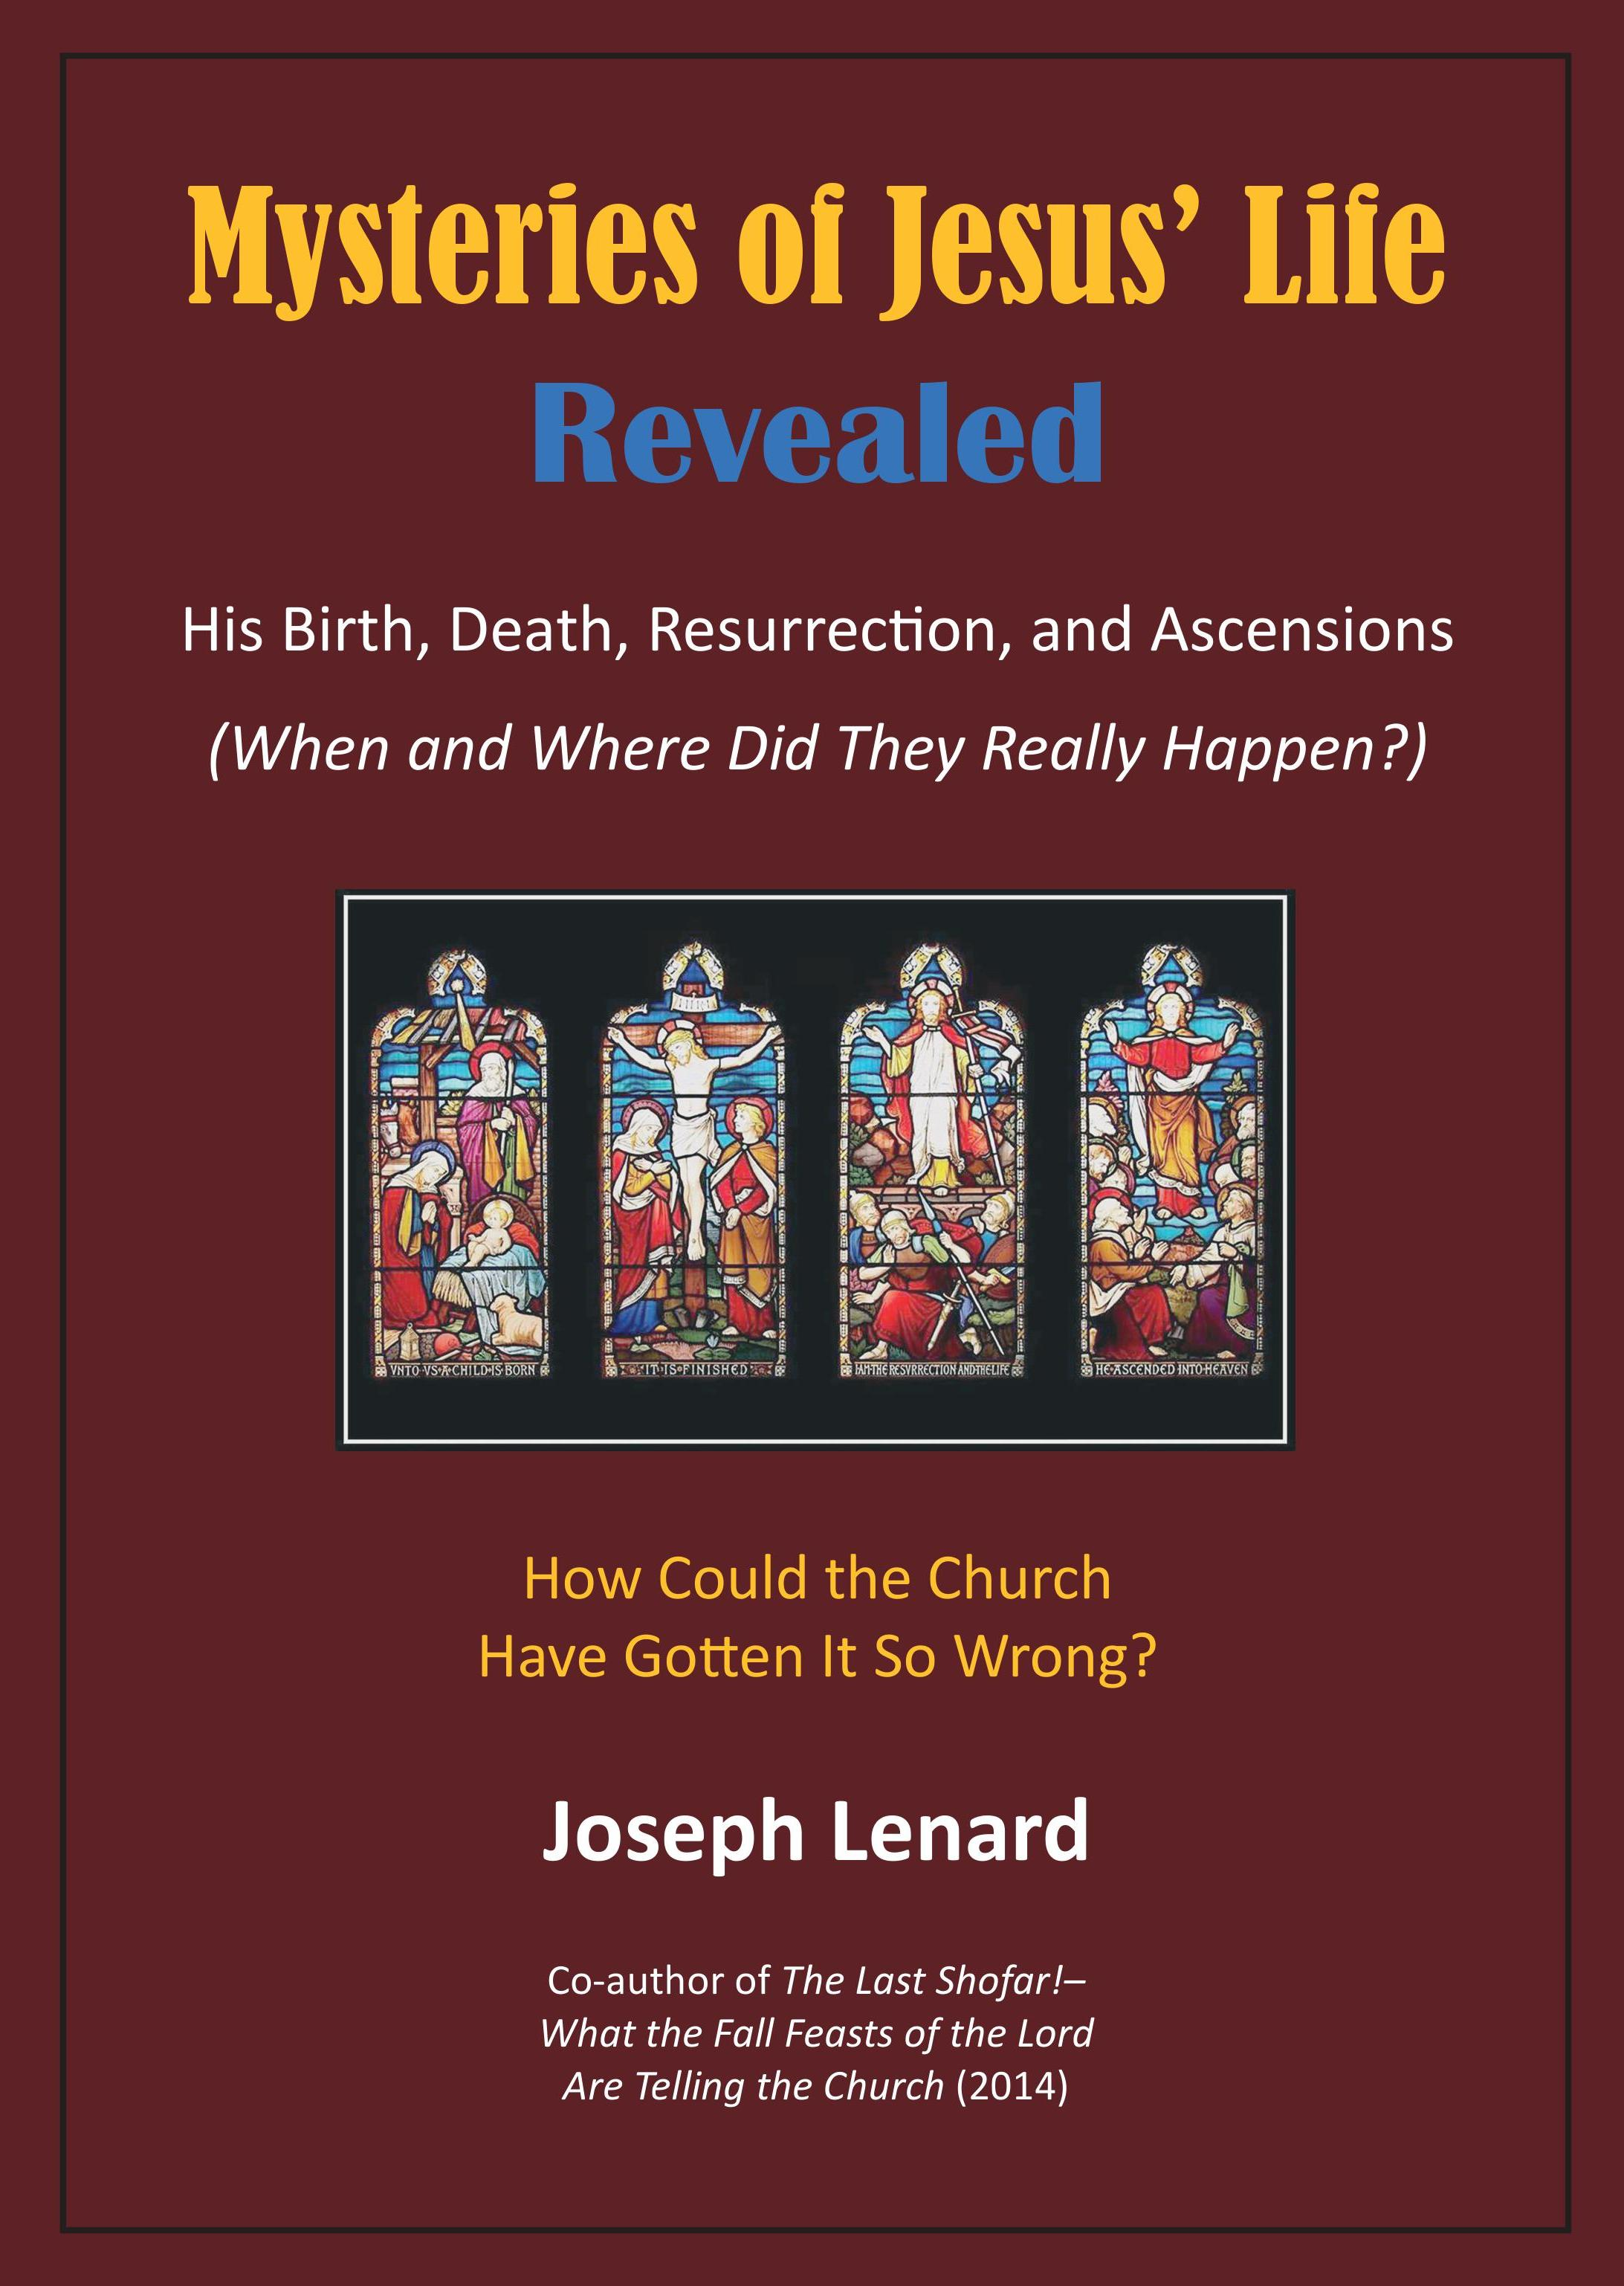 Mysteries of Jesus' Life – Revealed